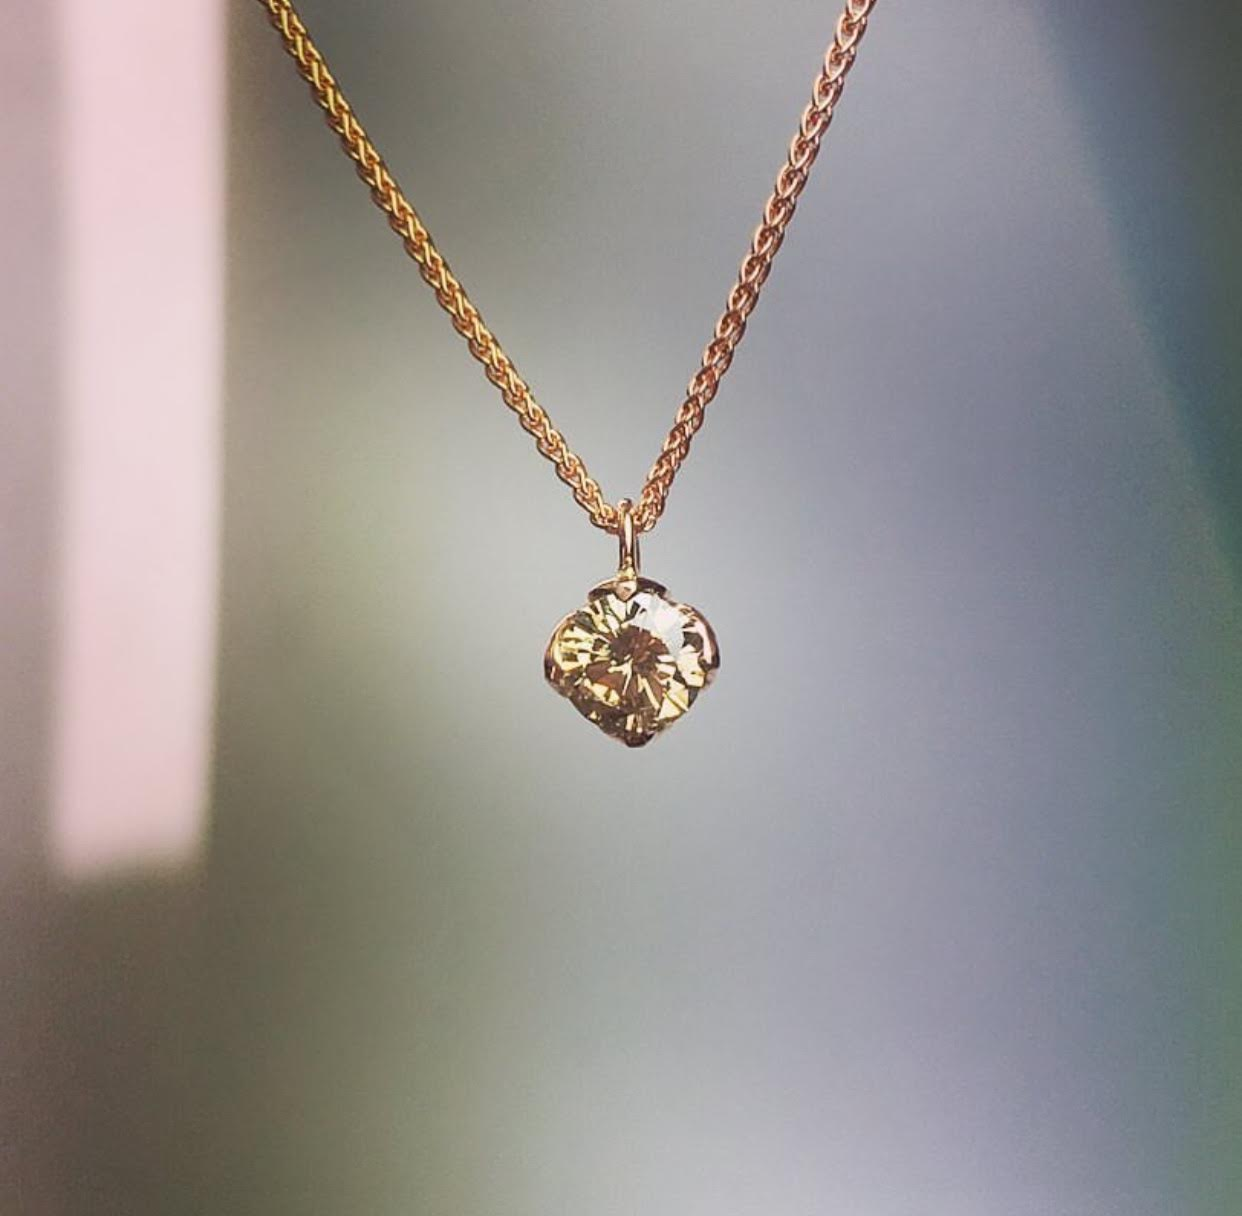 Diamond Necklace.jpg